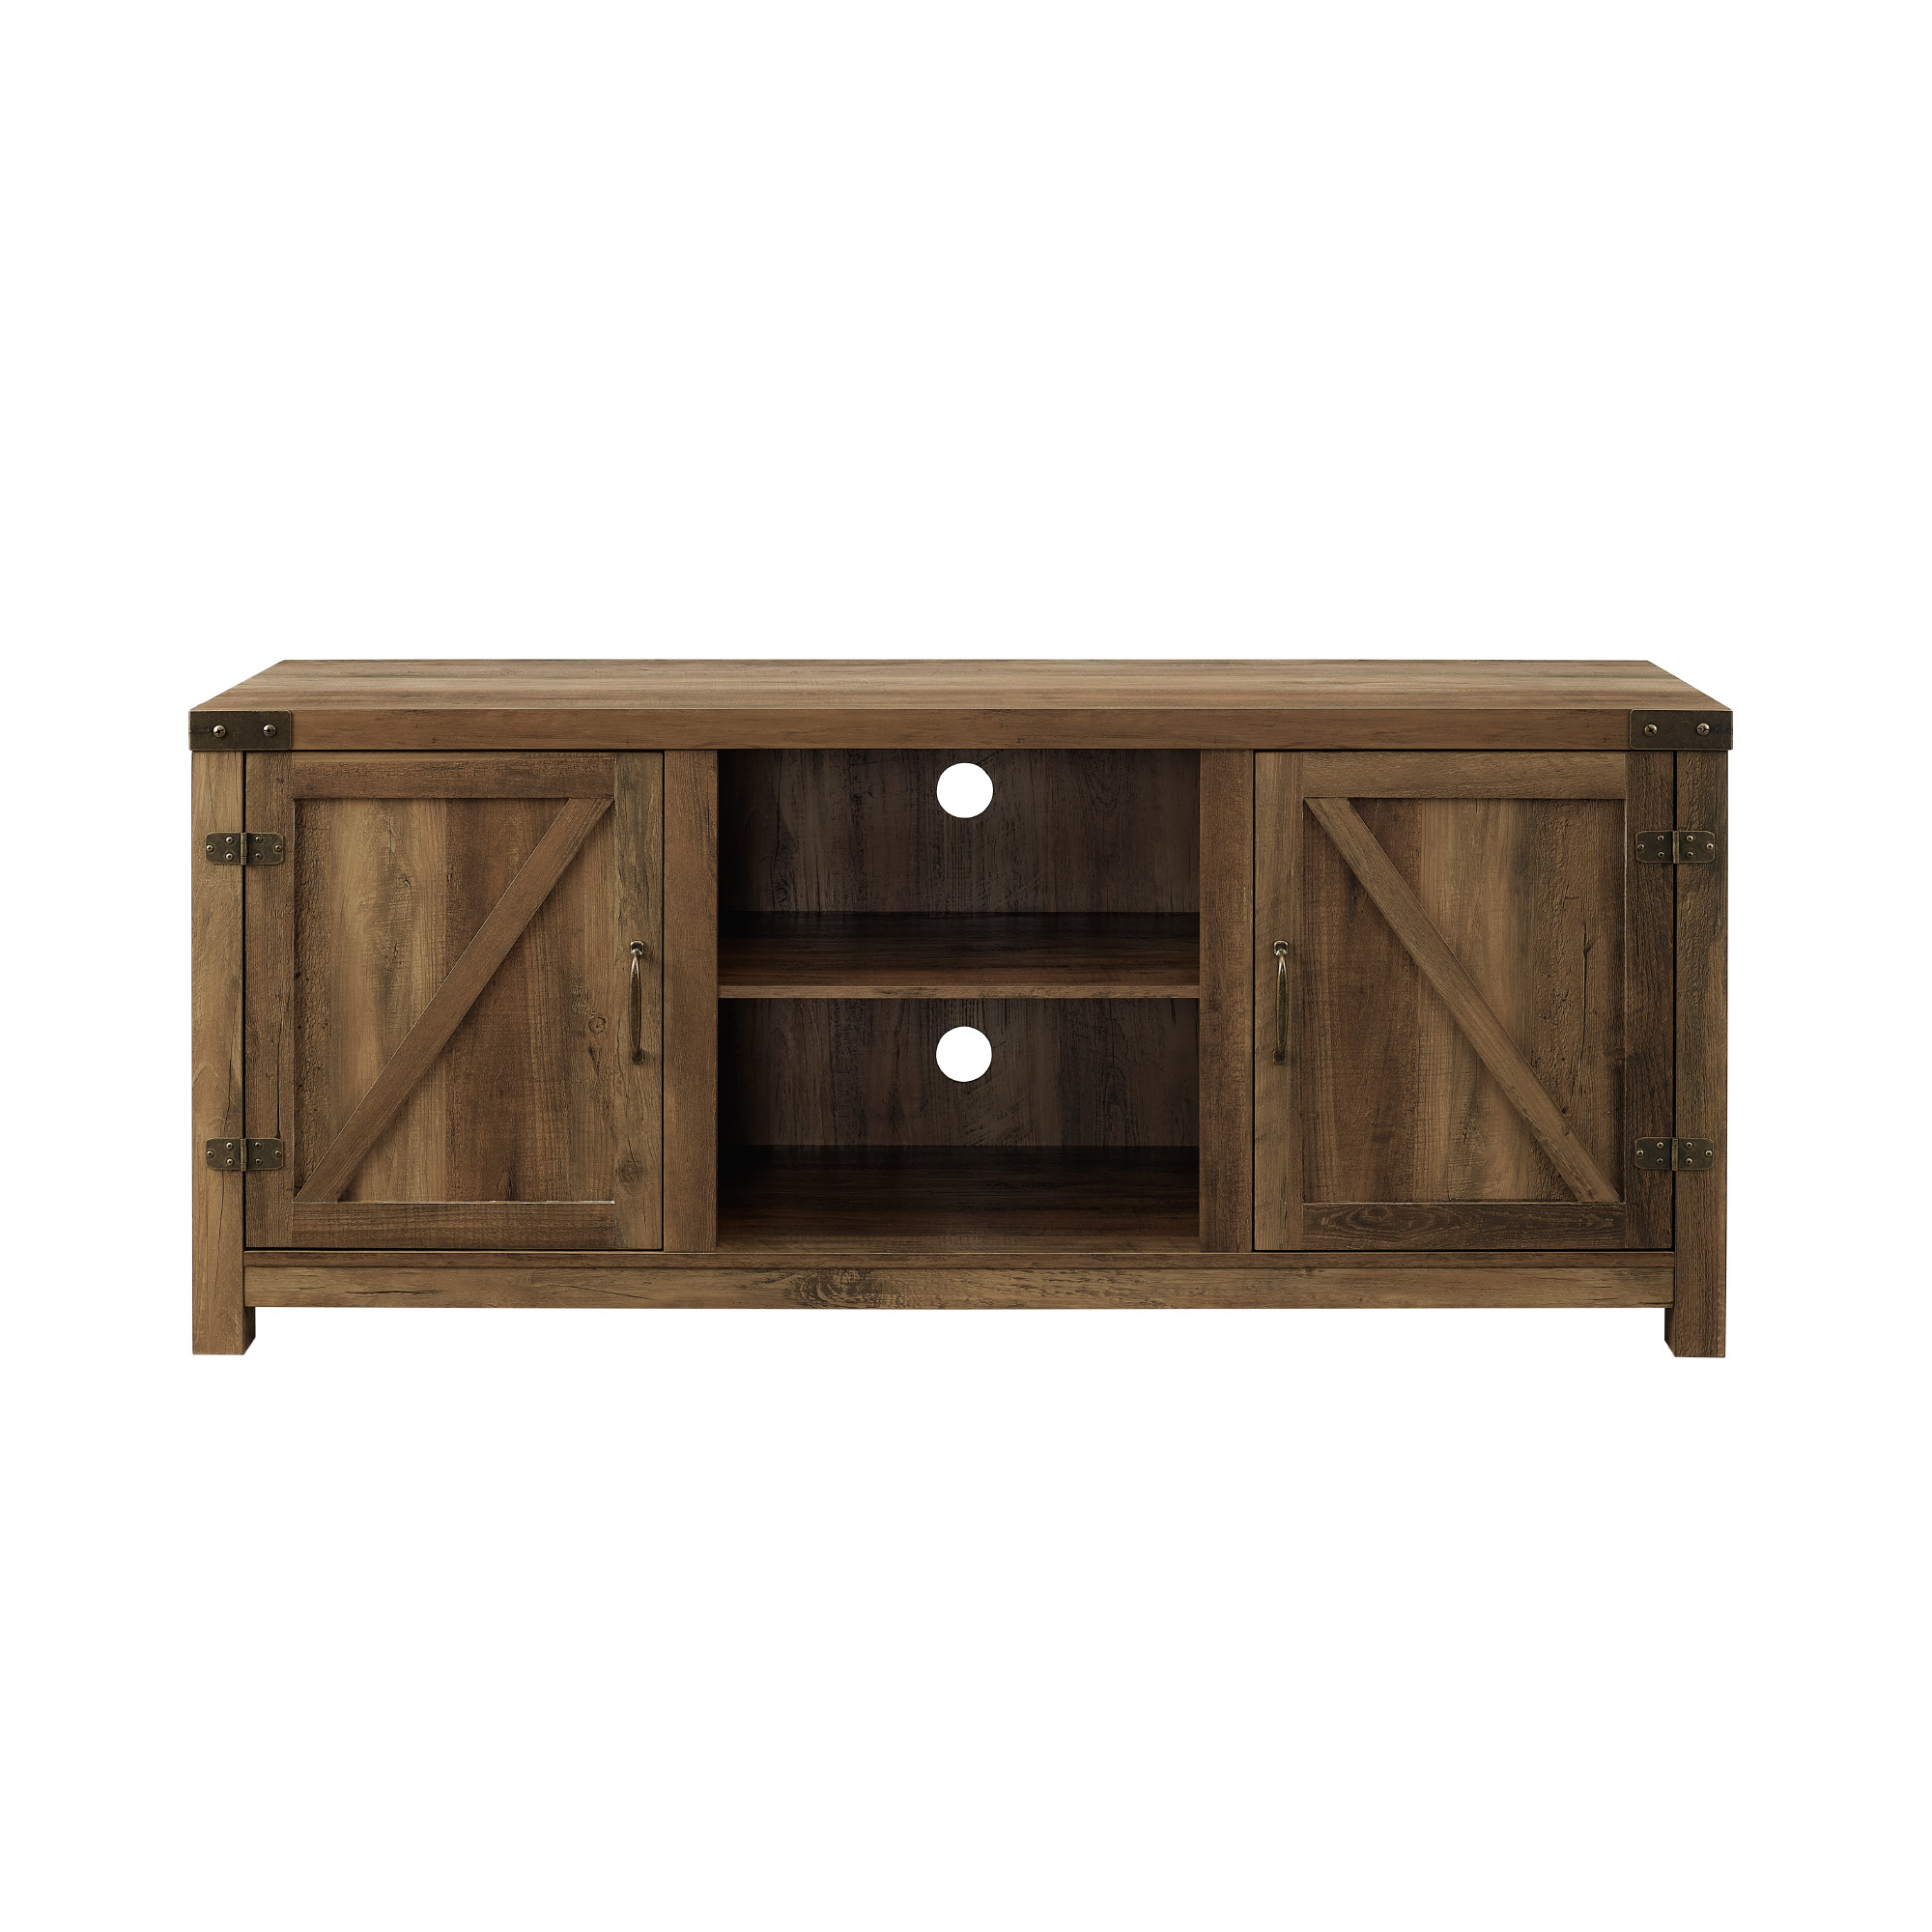 2017 Woven Paths Farmhouse Barn Door Tv Stands In Multiple Finishes Throughout Rustic Farmhouse Tv Stand Walmart / Woven Paths Farmhouse (View 5 of 10)